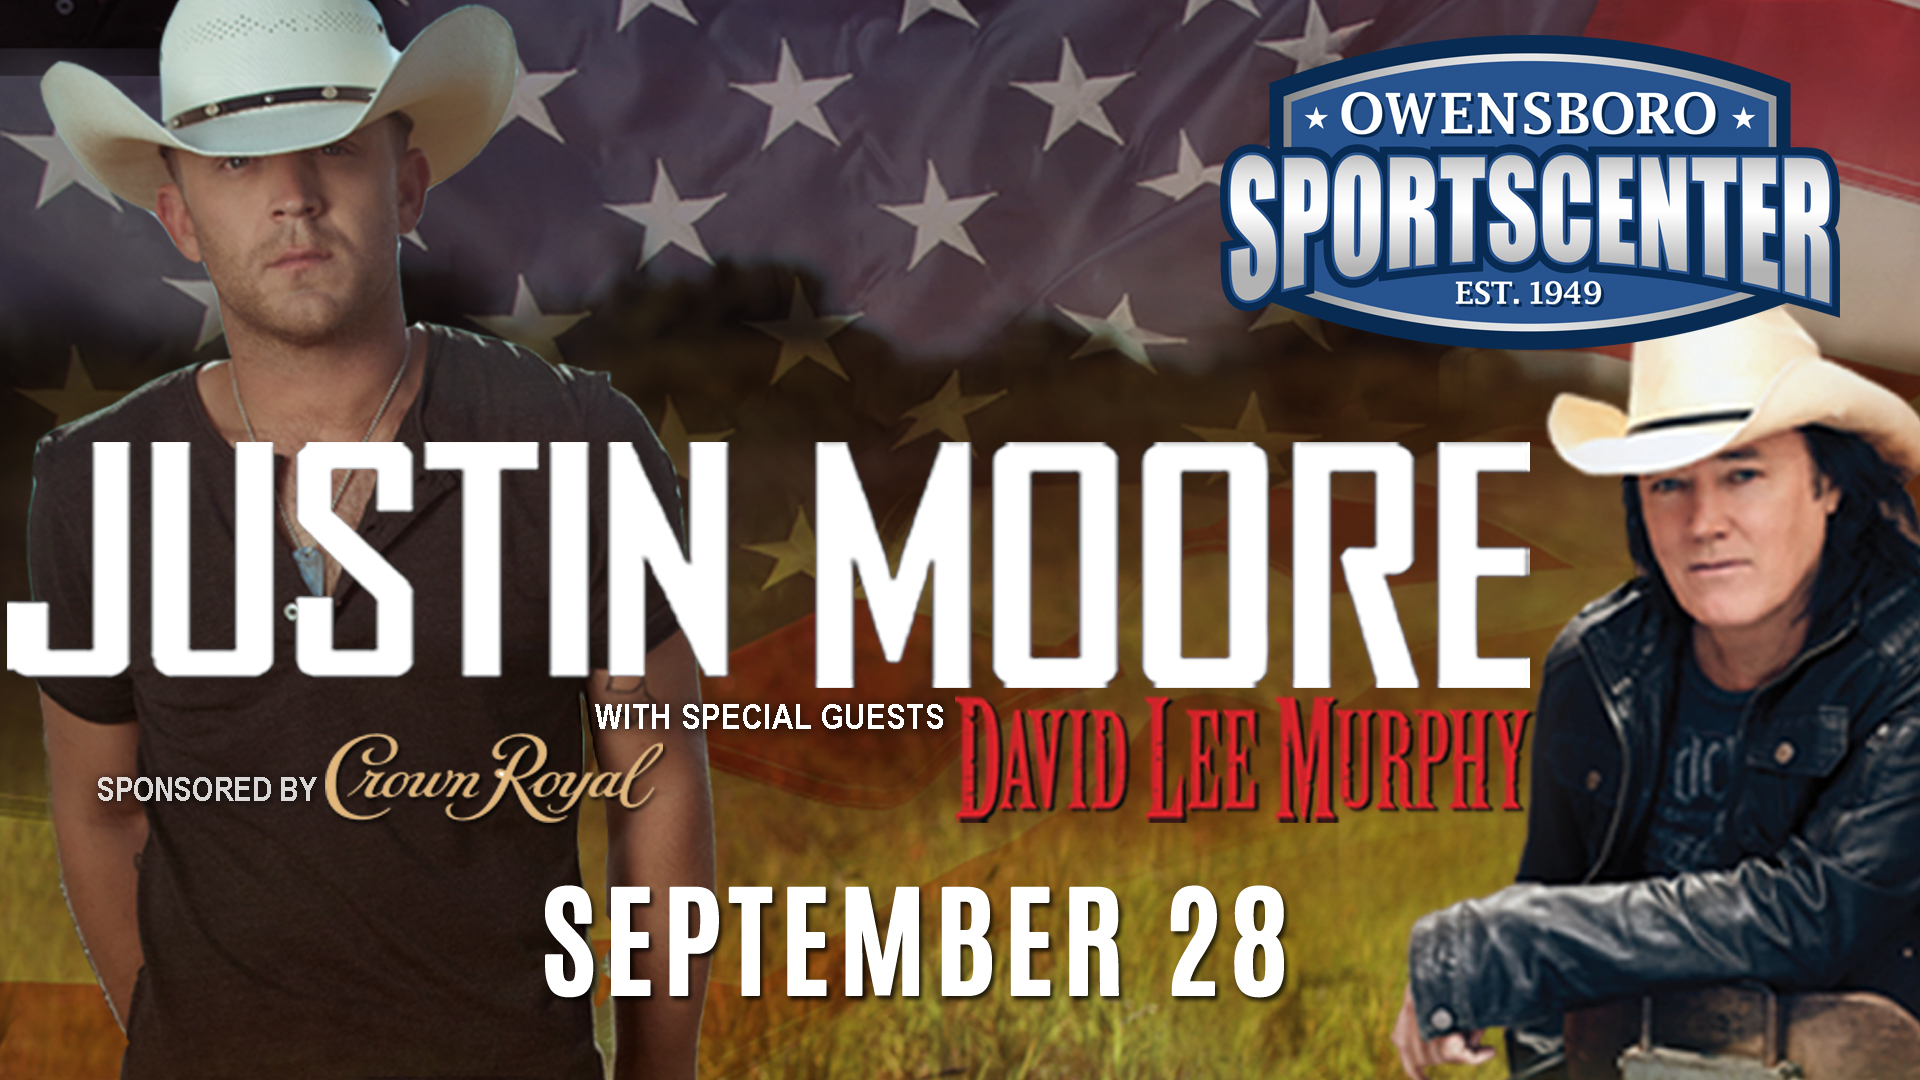 Feature: http://www.owensbororadio.com/justin-moore/